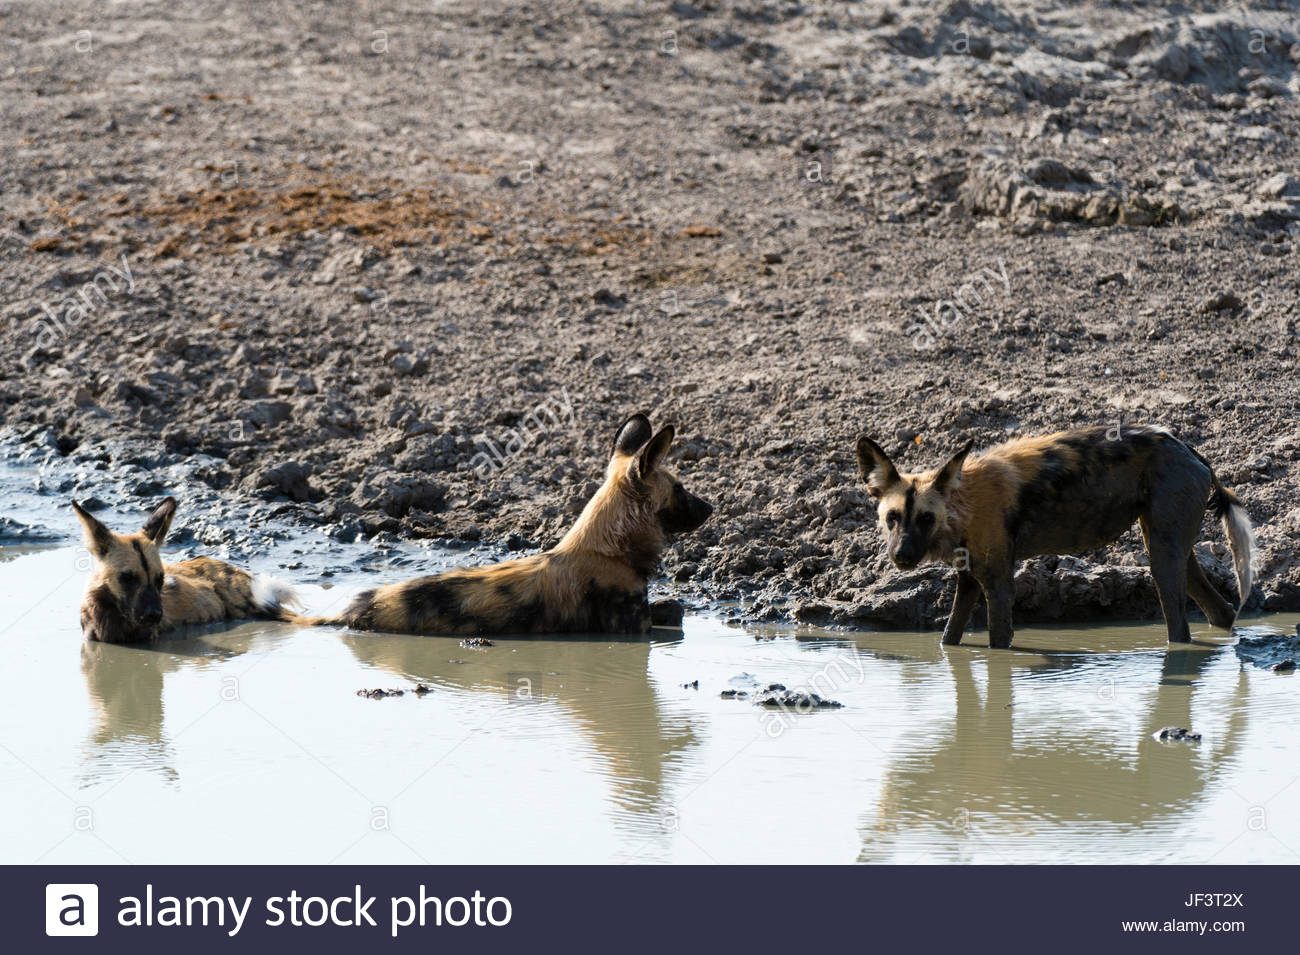 Endangered African wild dogs or painted wolves, Lycaon pictus, cooling off in a water pool. - Stock Image